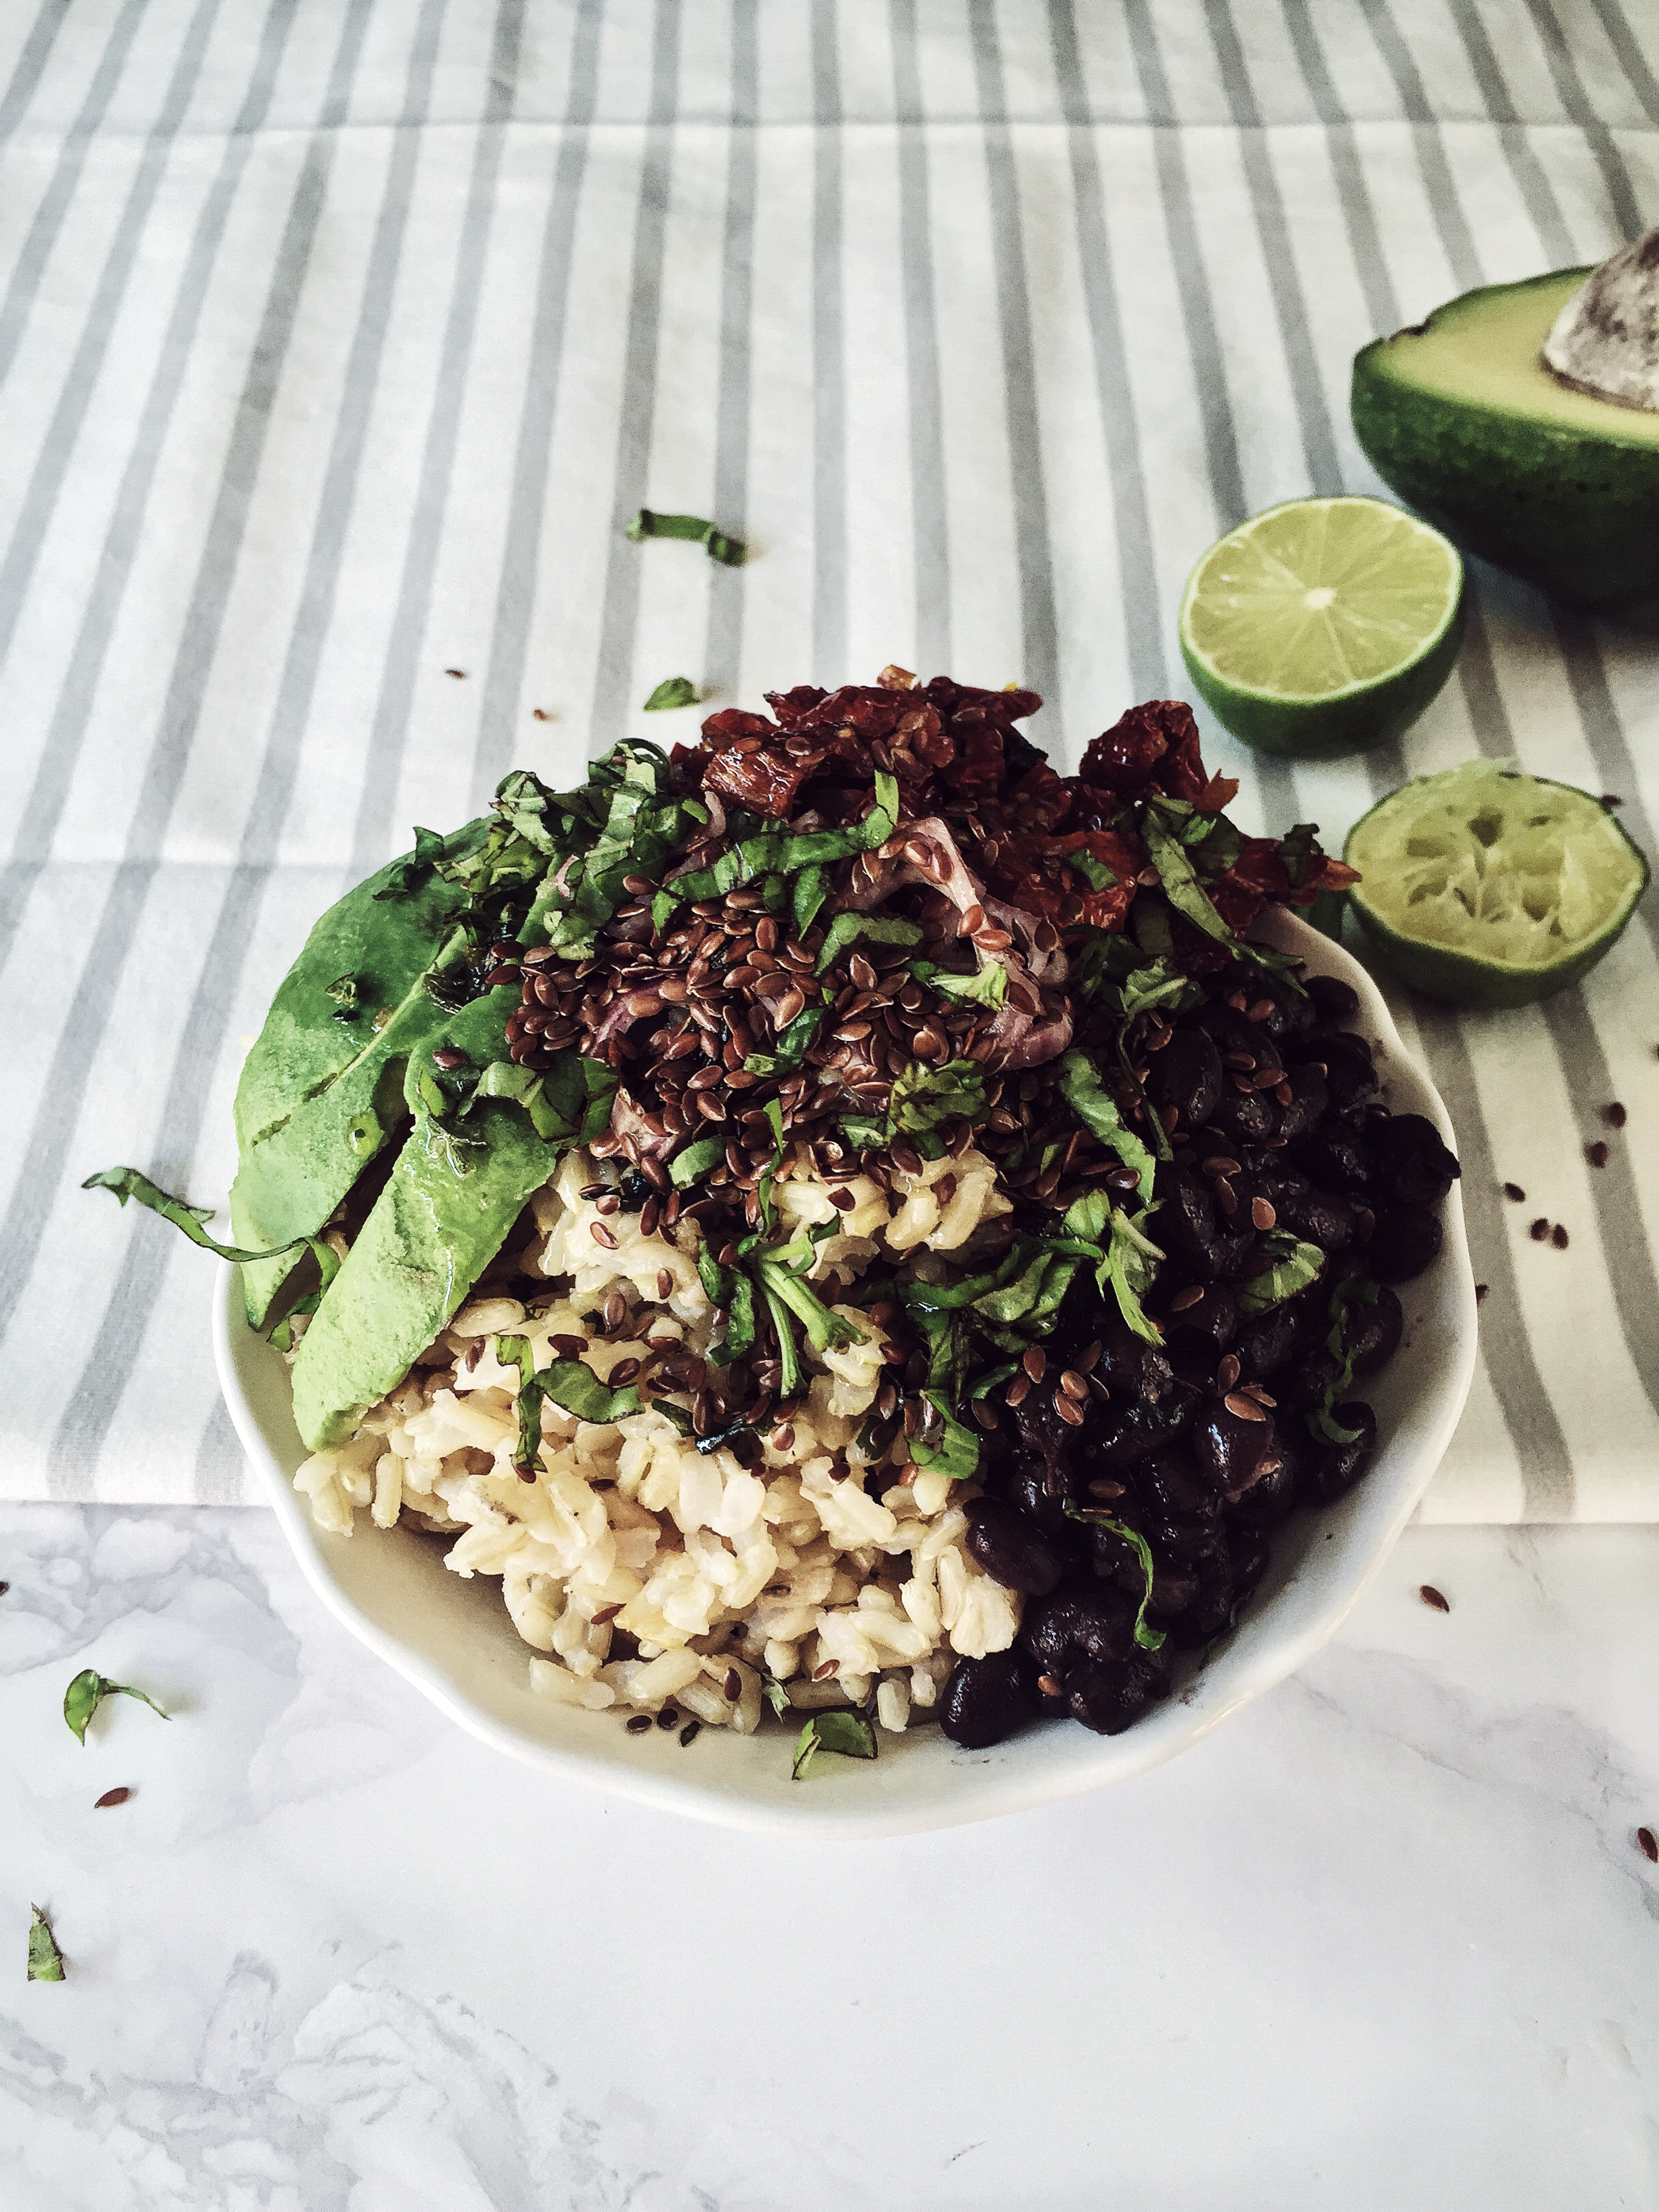 Buddha bowl recipe with black beans and brown rice gourmet project a caribbean and vegan buddha bowl recipe brown rice avocado black beans forumfinder Gallery